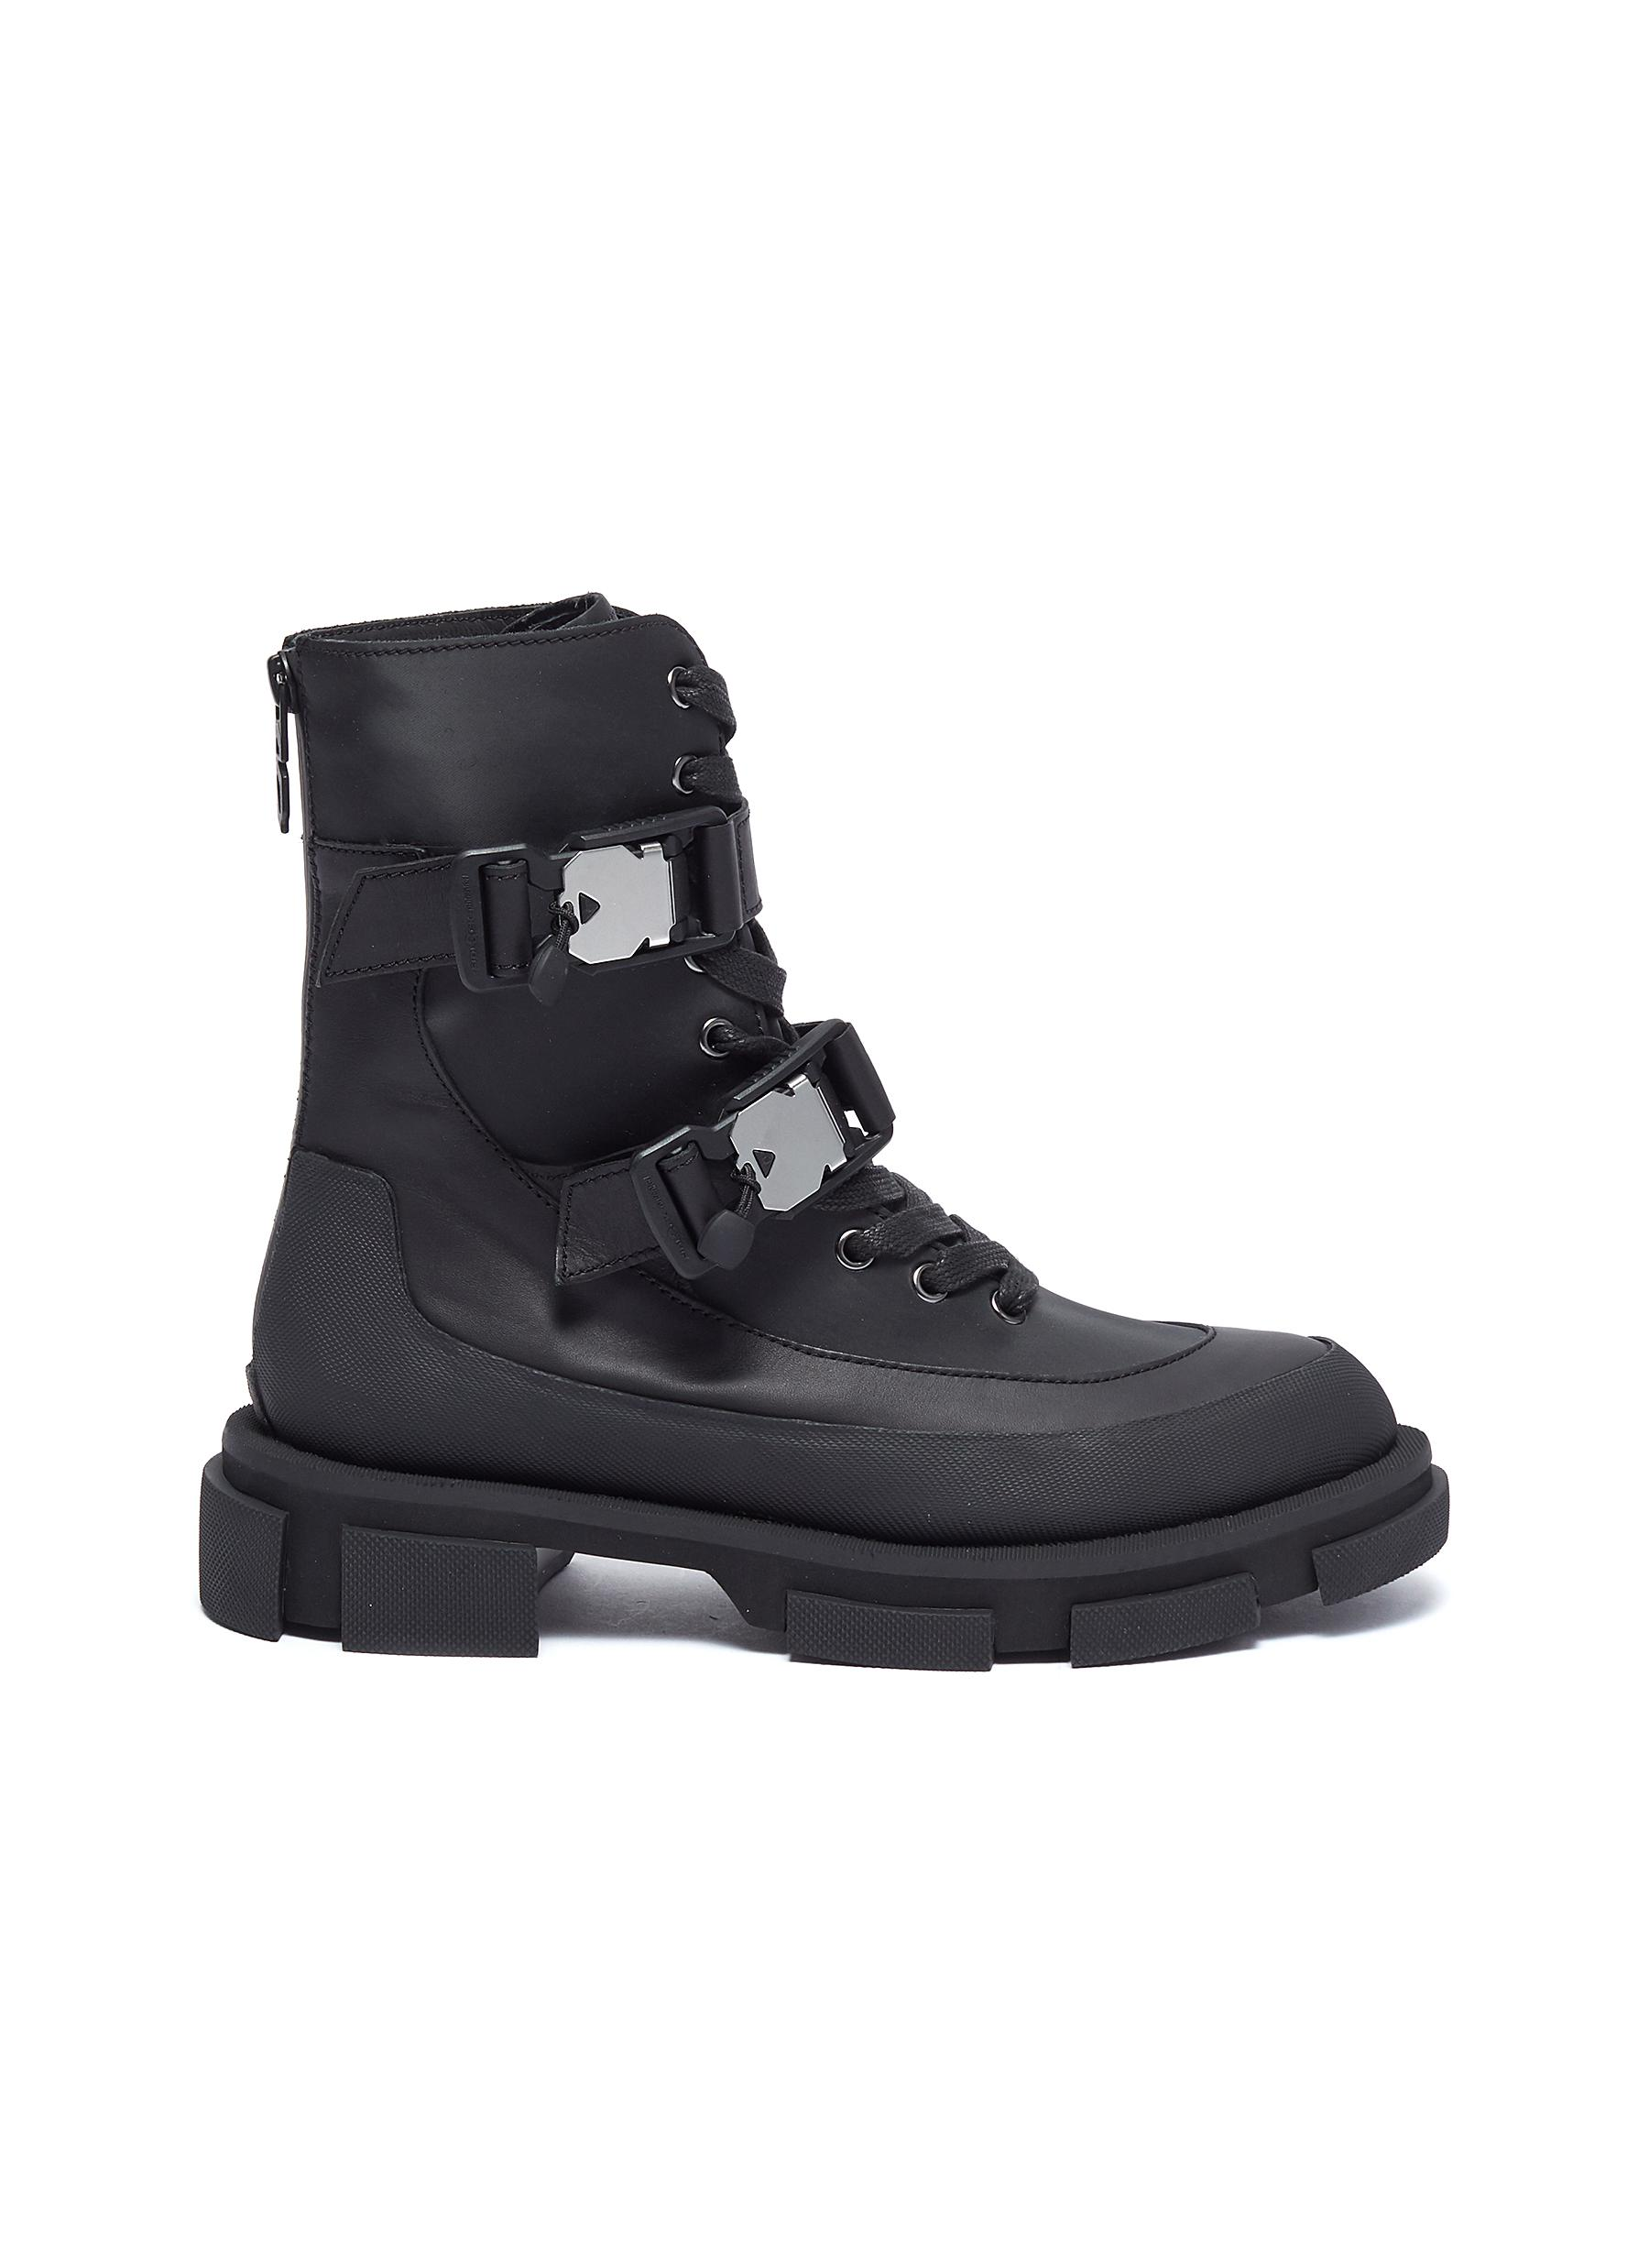 Gao' harness buckles leather combat boots